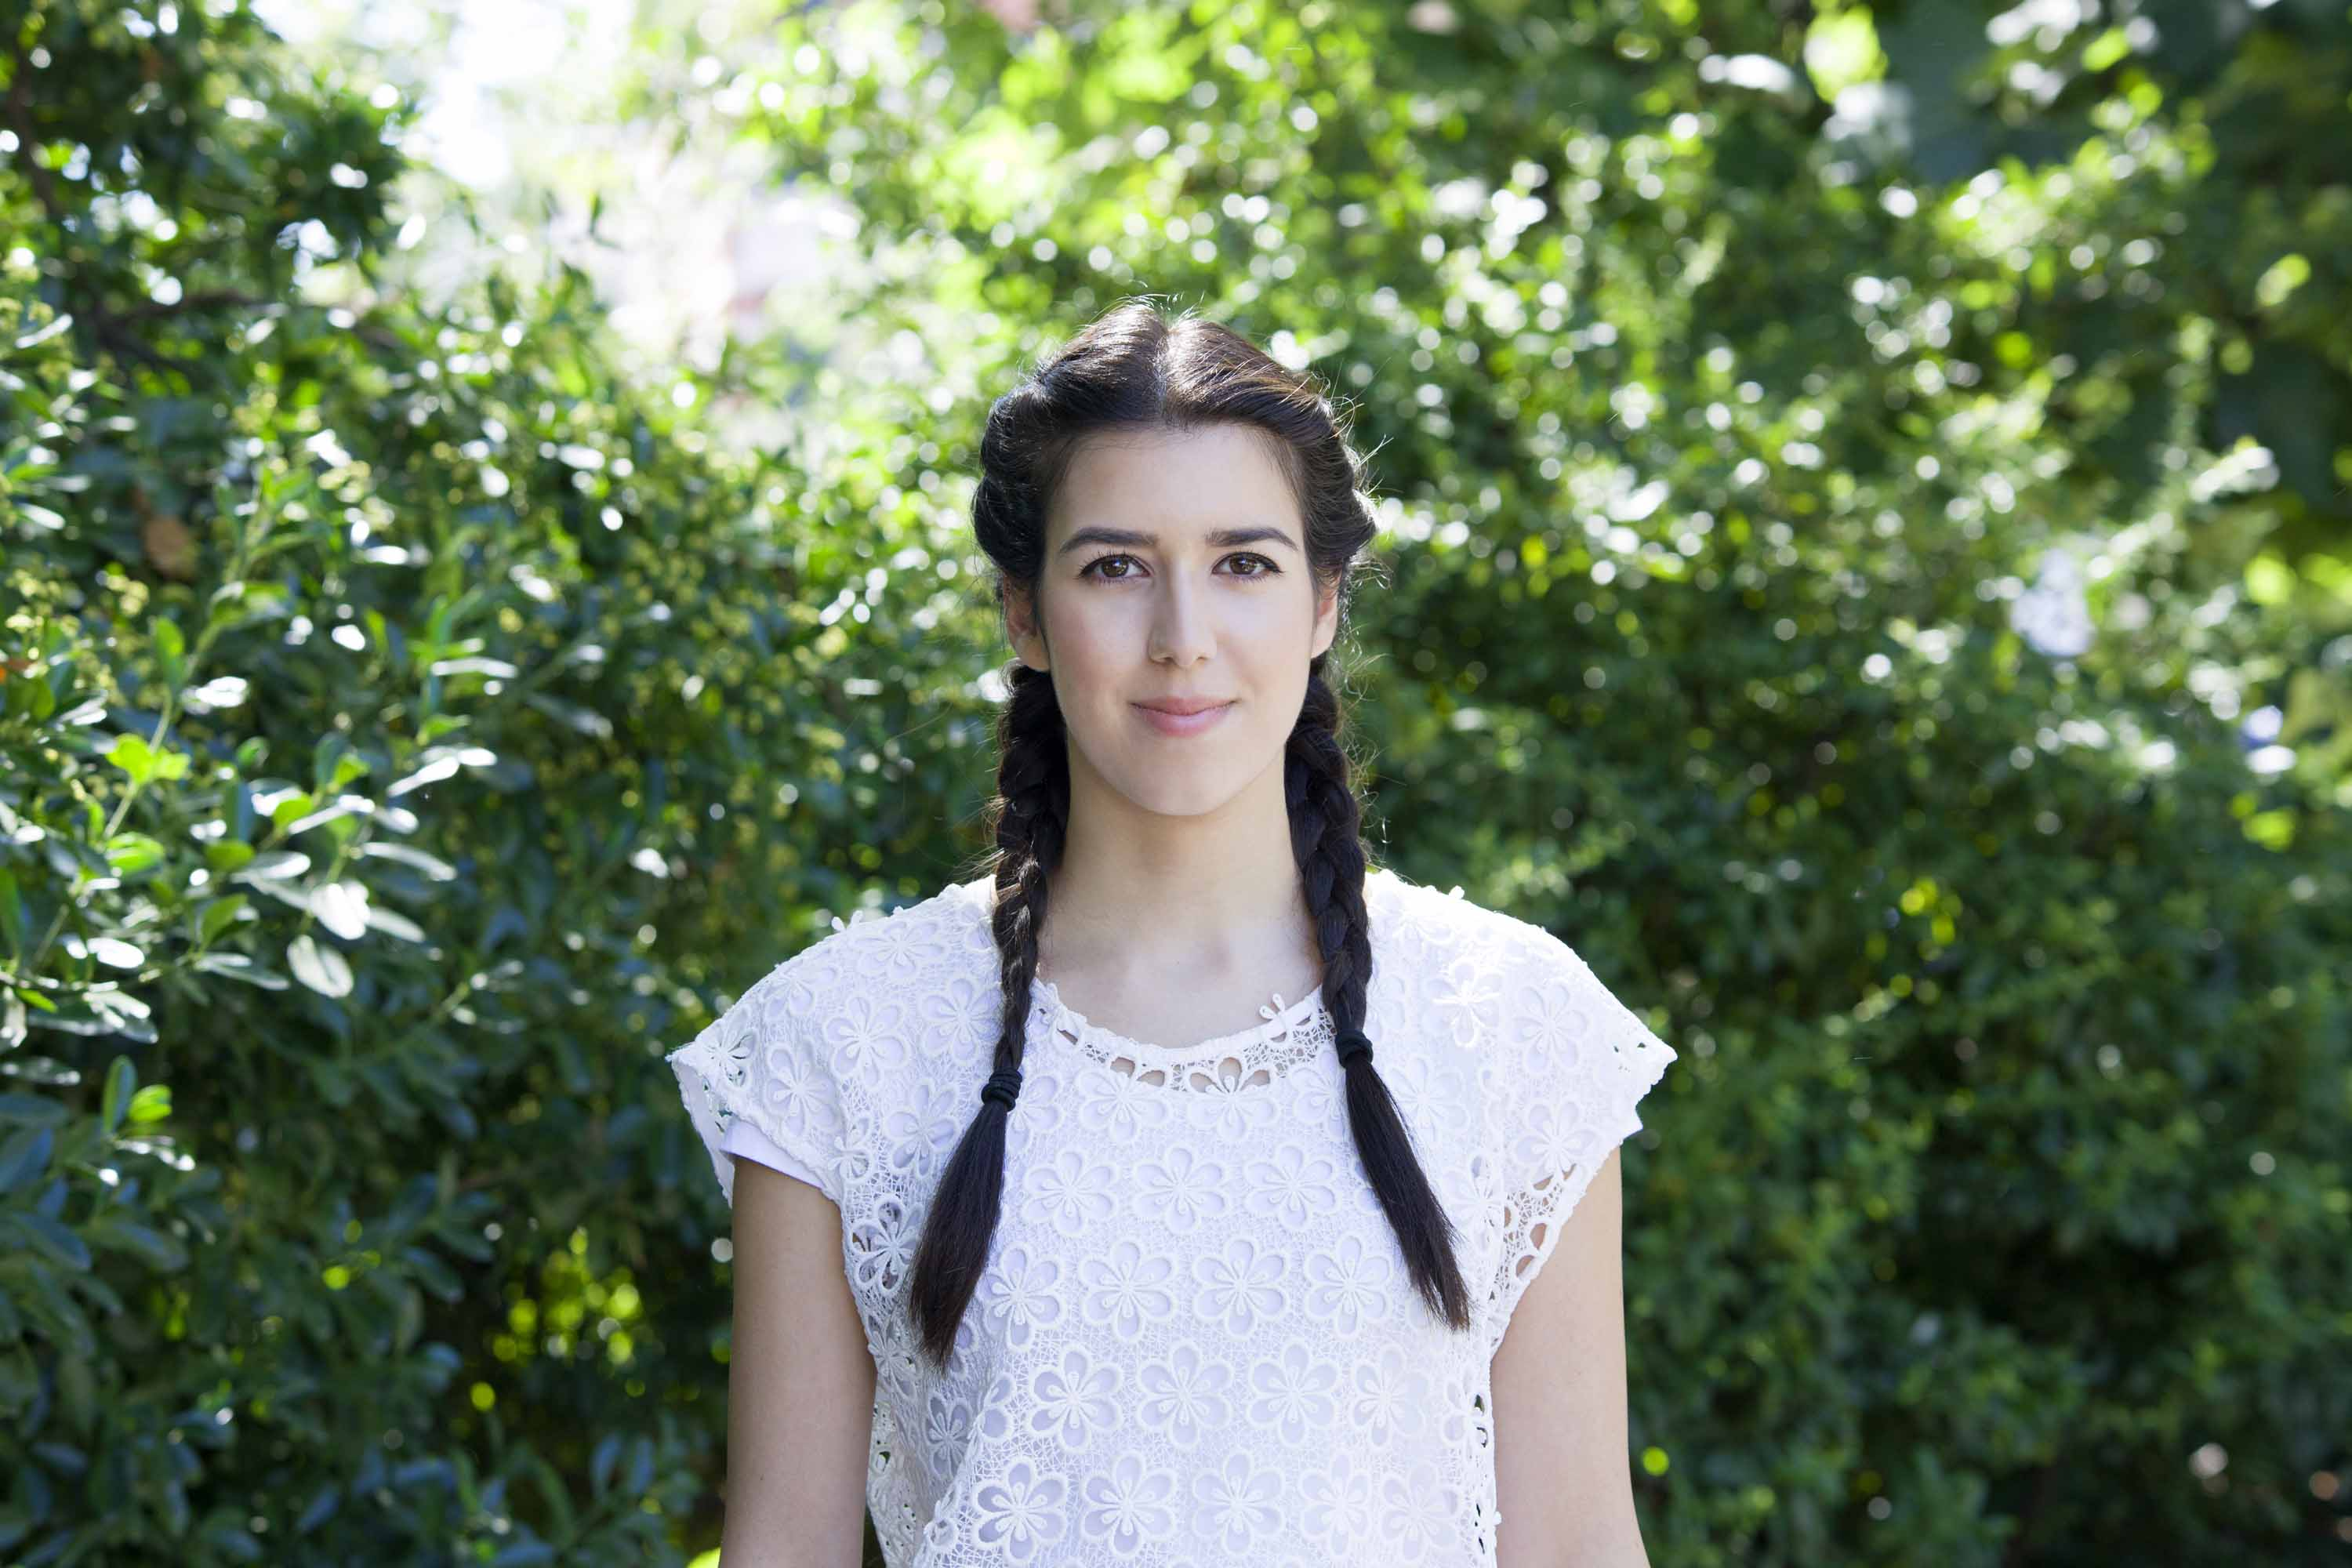 hairstyle ideas for apple picking: pigtail braids